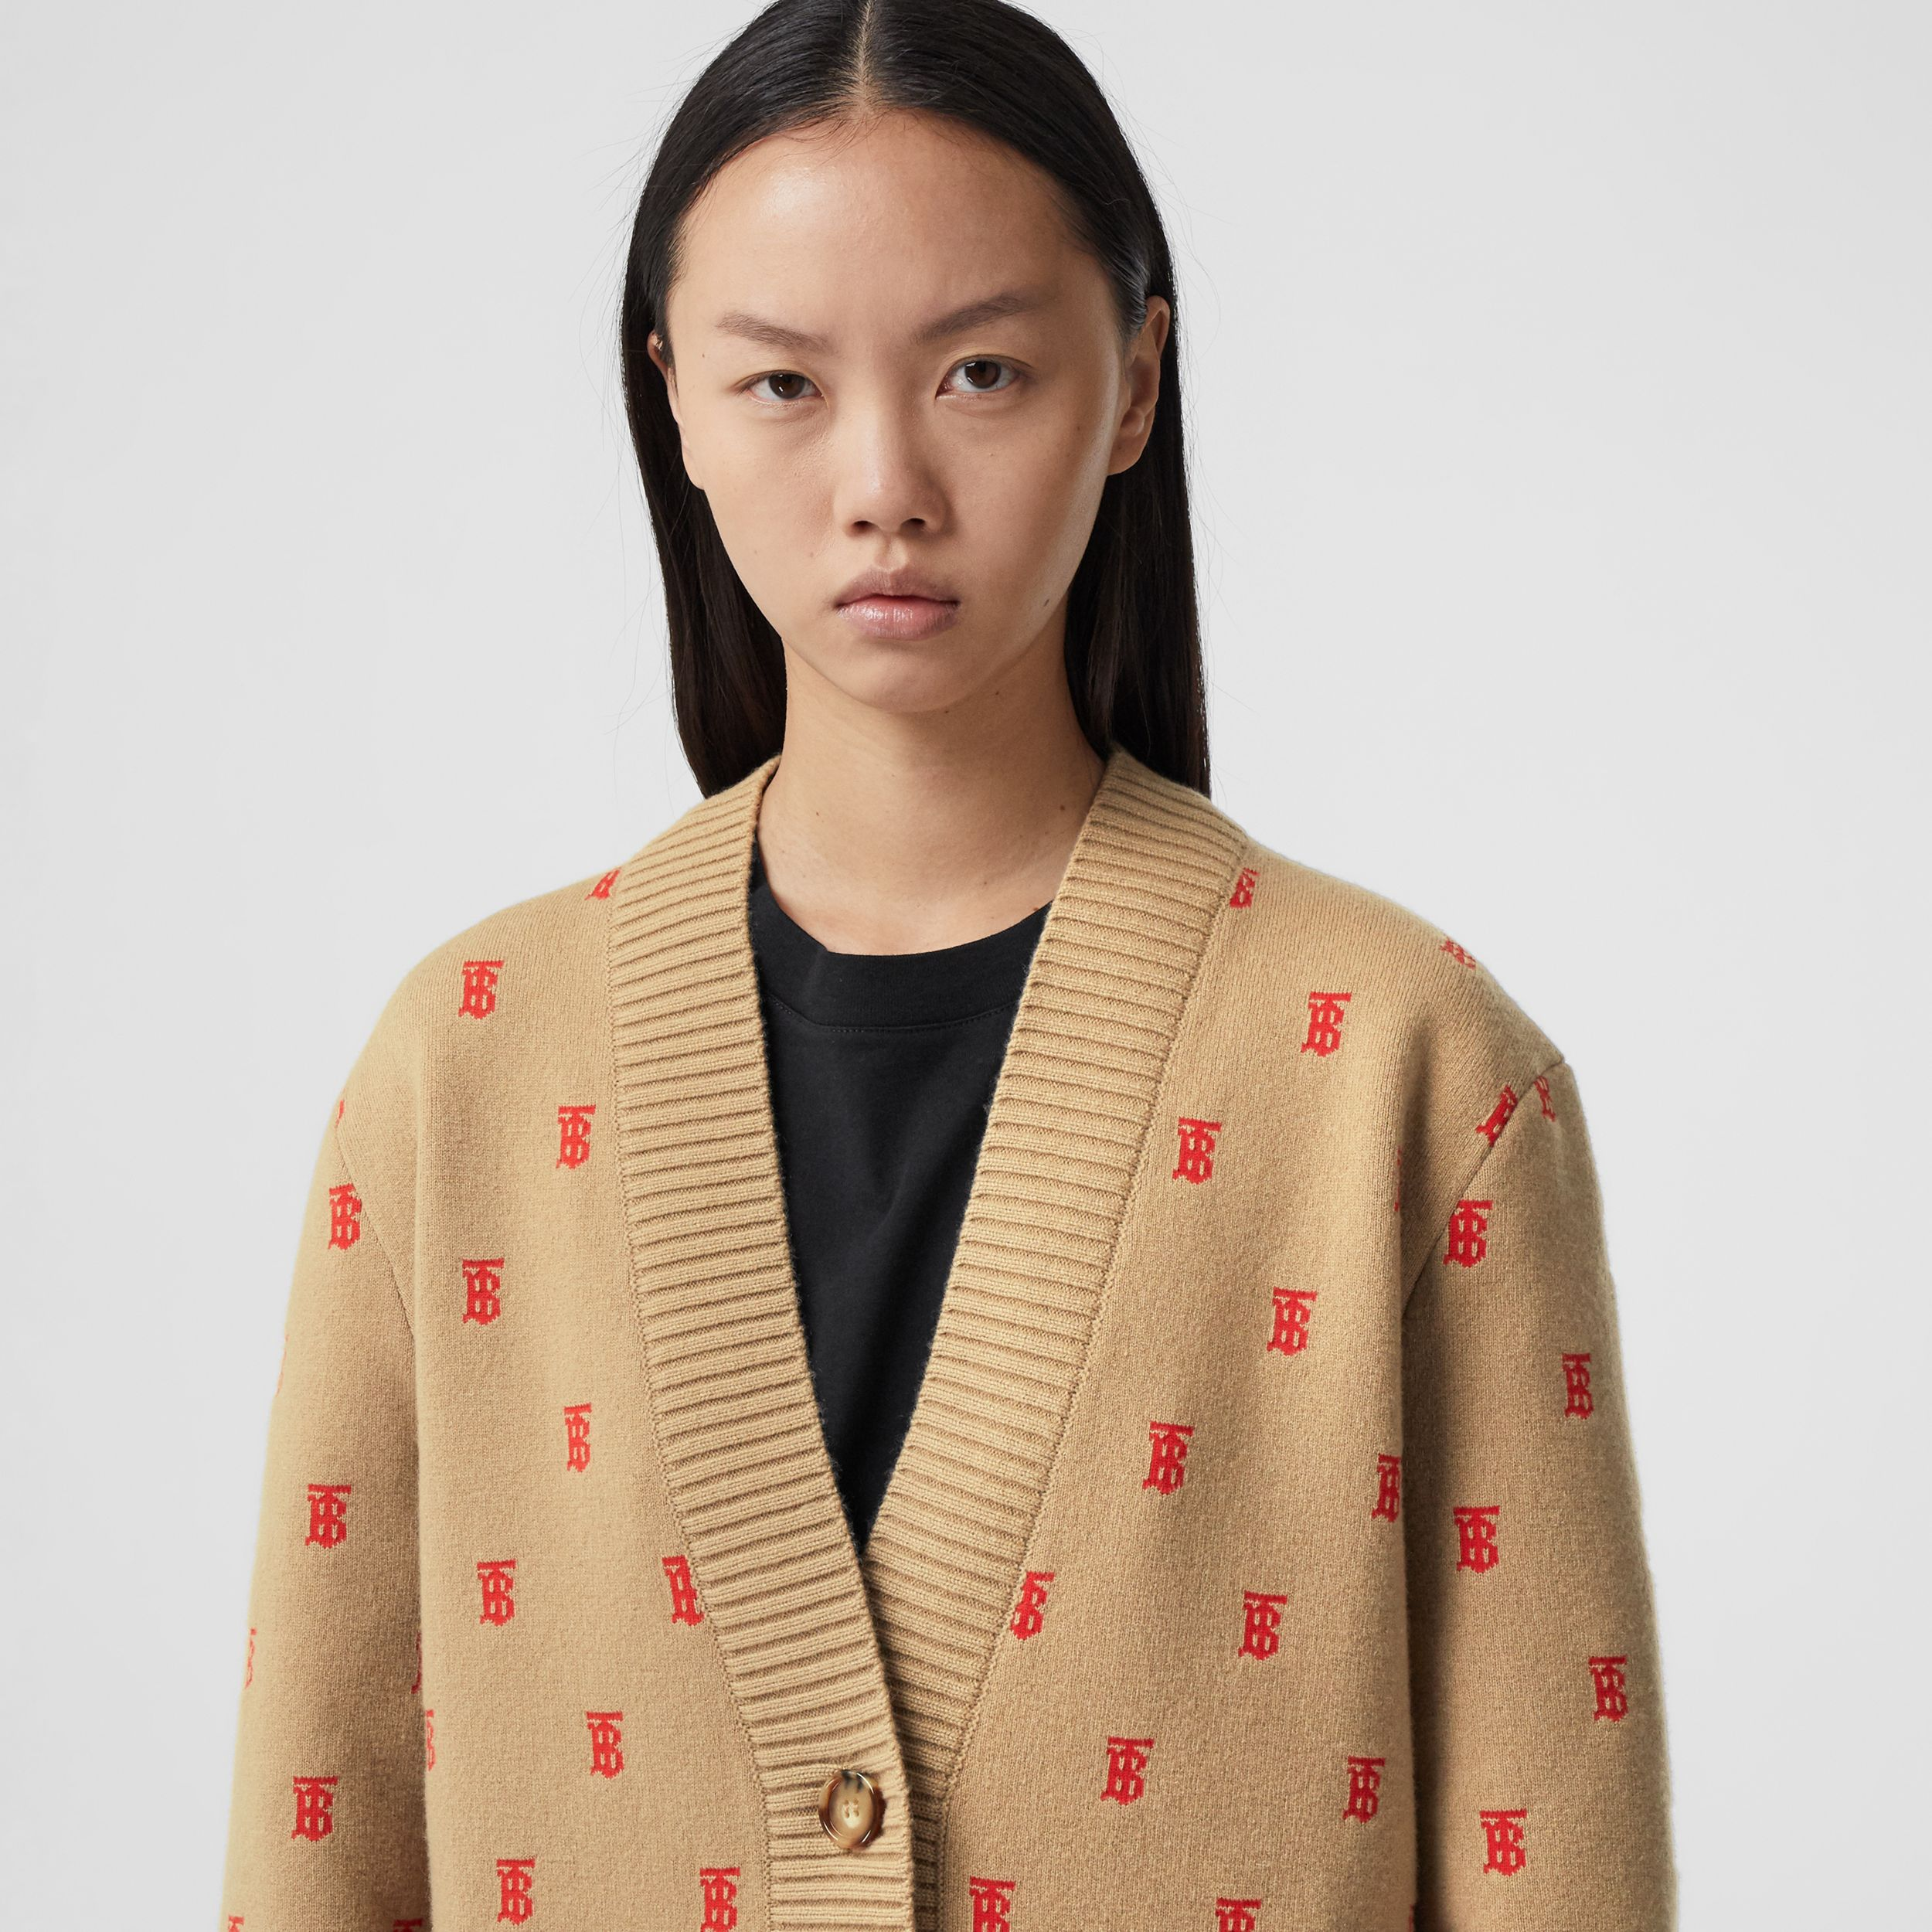 Monogram Wool Cashmere Blend Oversized Cardigan in Archive Beige - Women | Burberry - 2